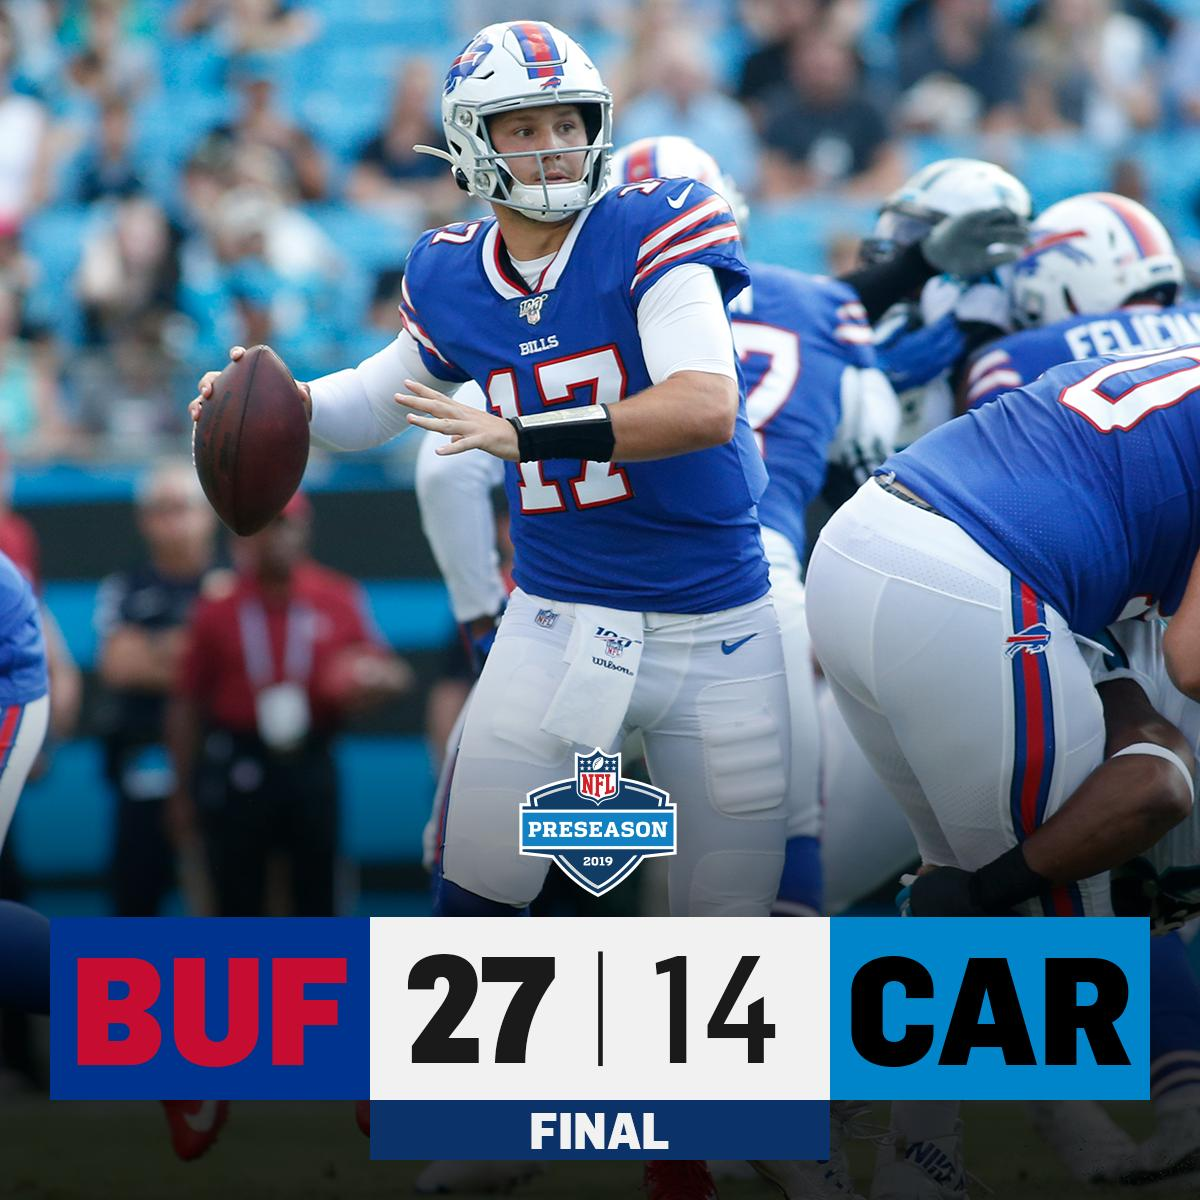 FINAL: @BuffaloBills leave Carolina with a victory! #BUFvsCAR